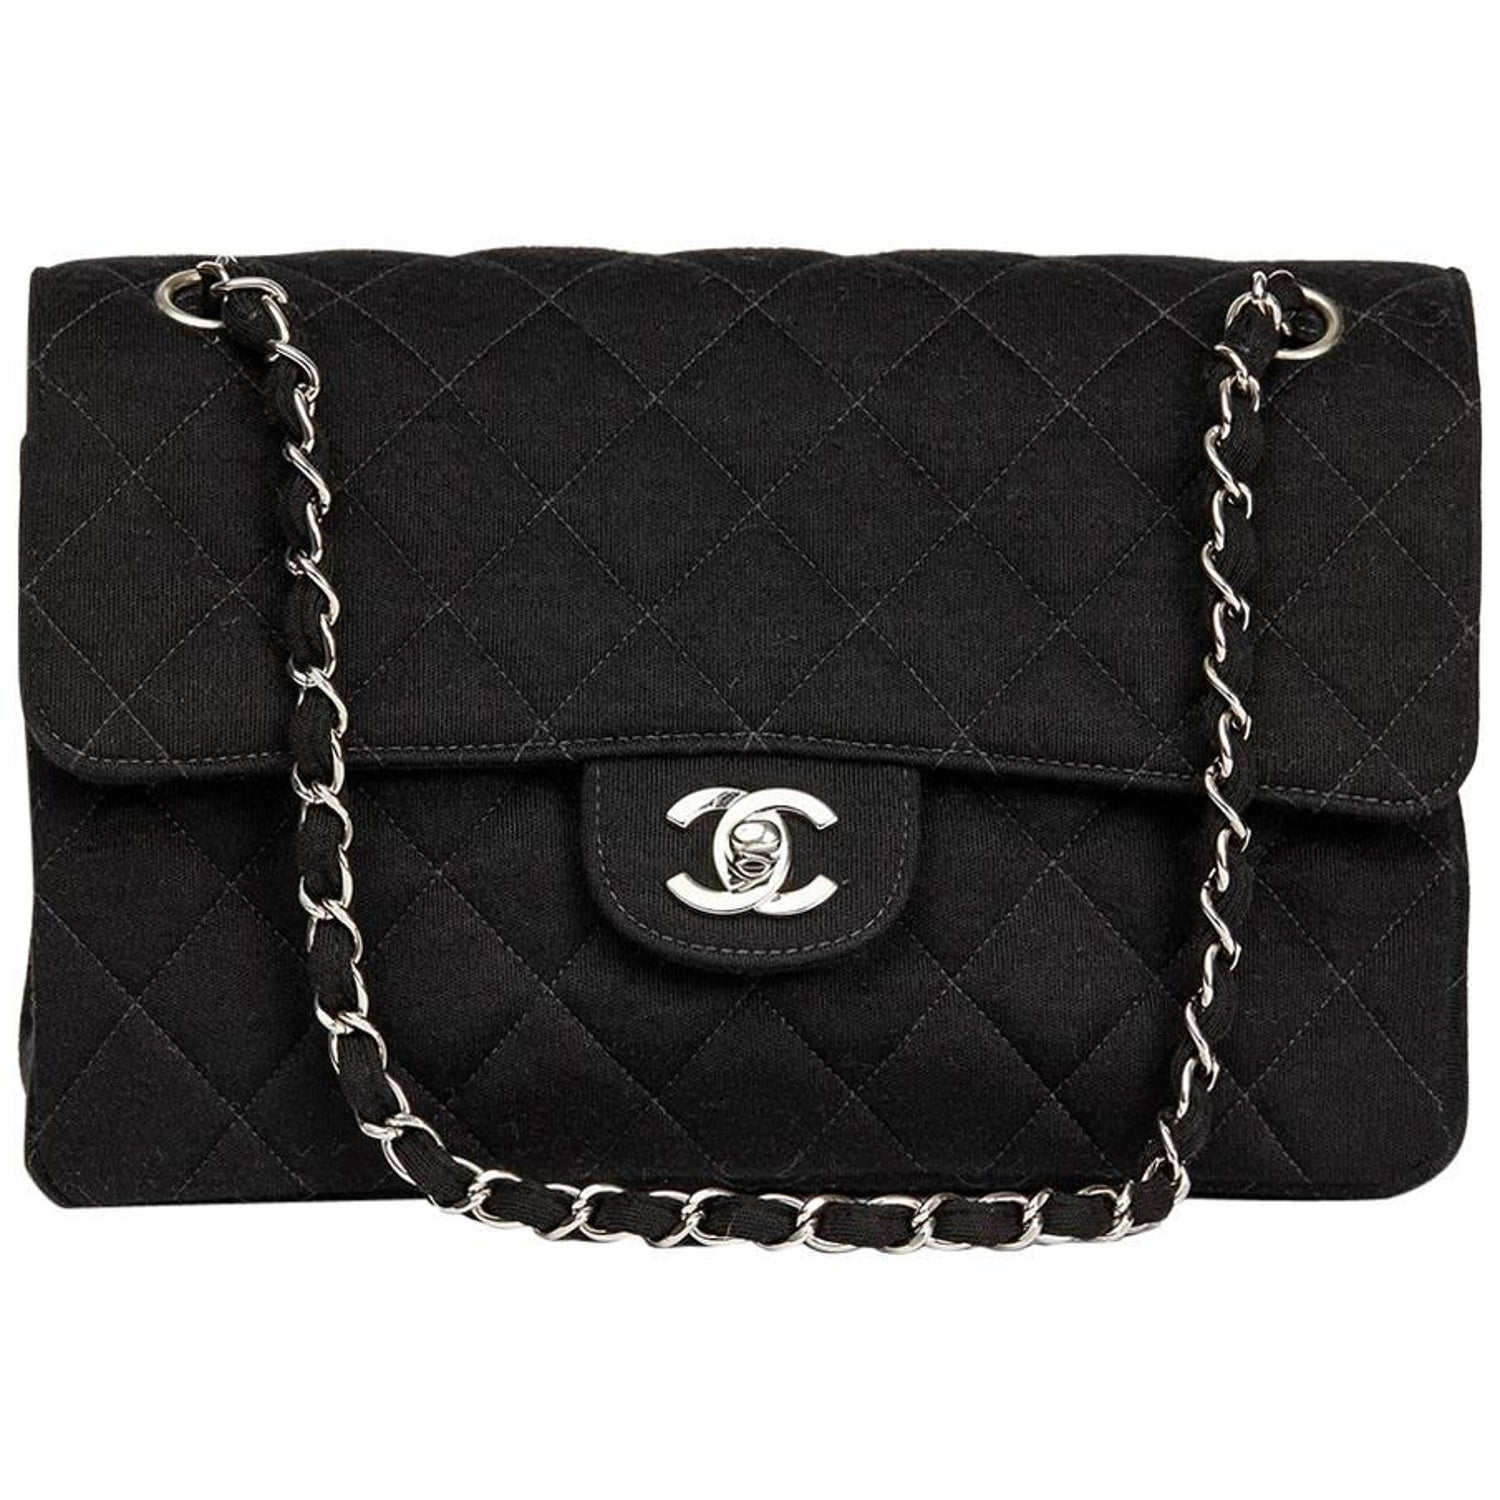 9049474754e3 Chanel Black Jersey Vintage Double Sided Medium Classic Double Flap Bag,  1996 at 1stdibs